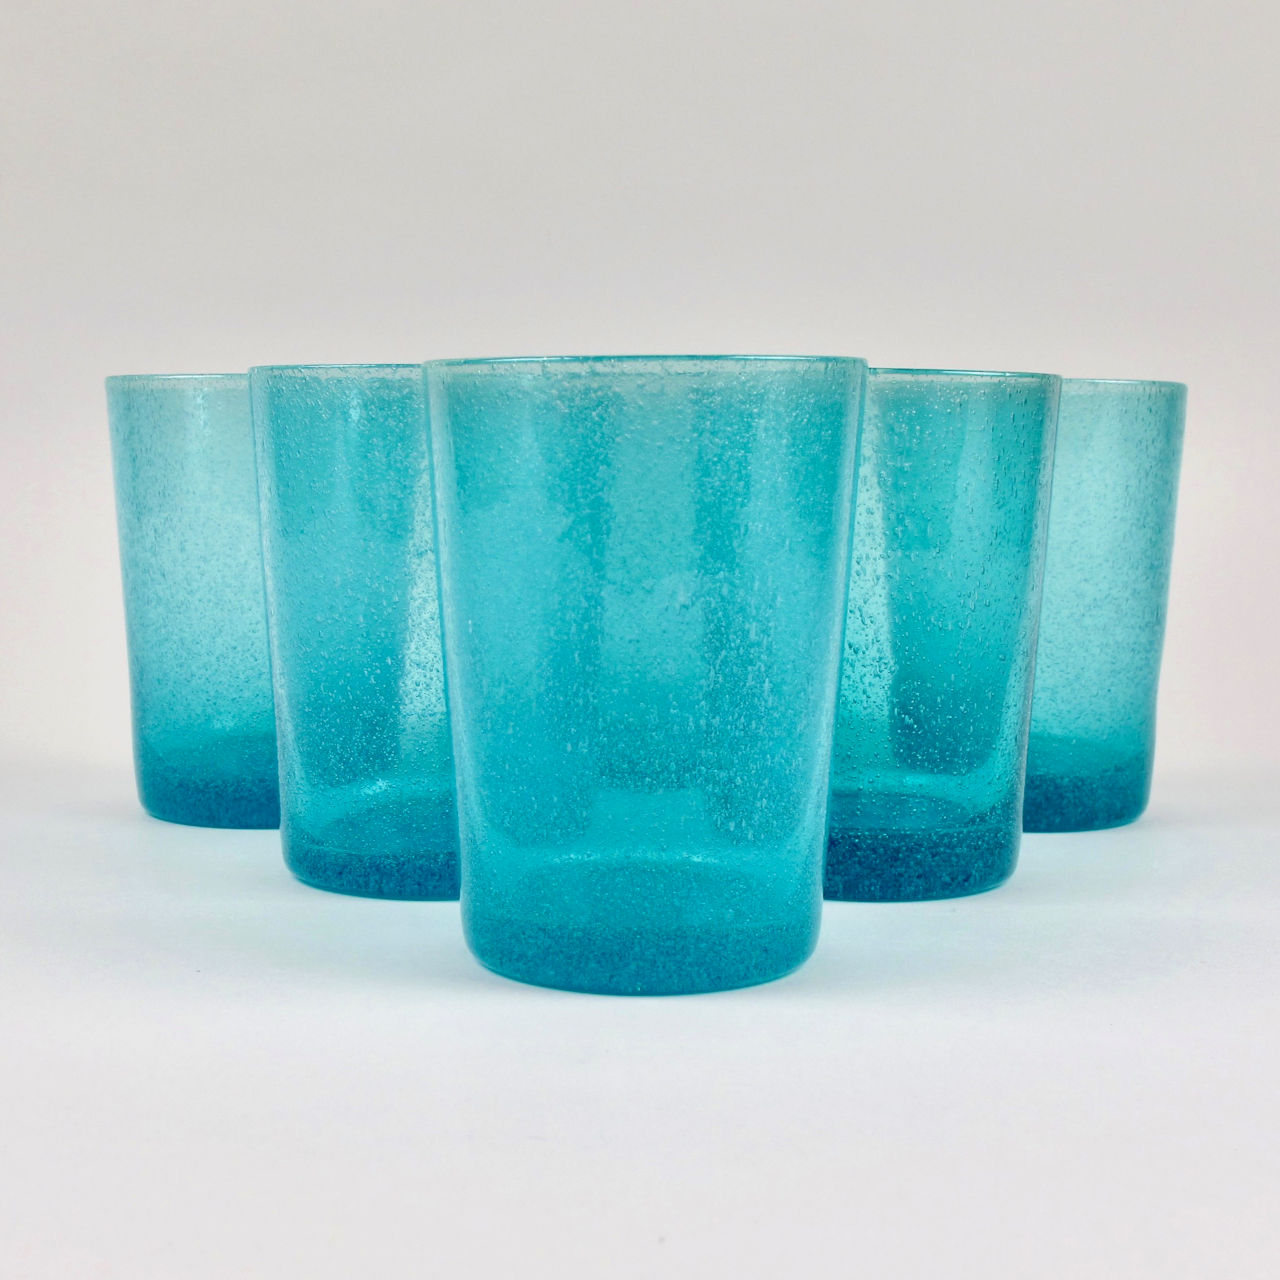 Boxed Set of 6 Recycled Glass Tumblers - Honey Bird